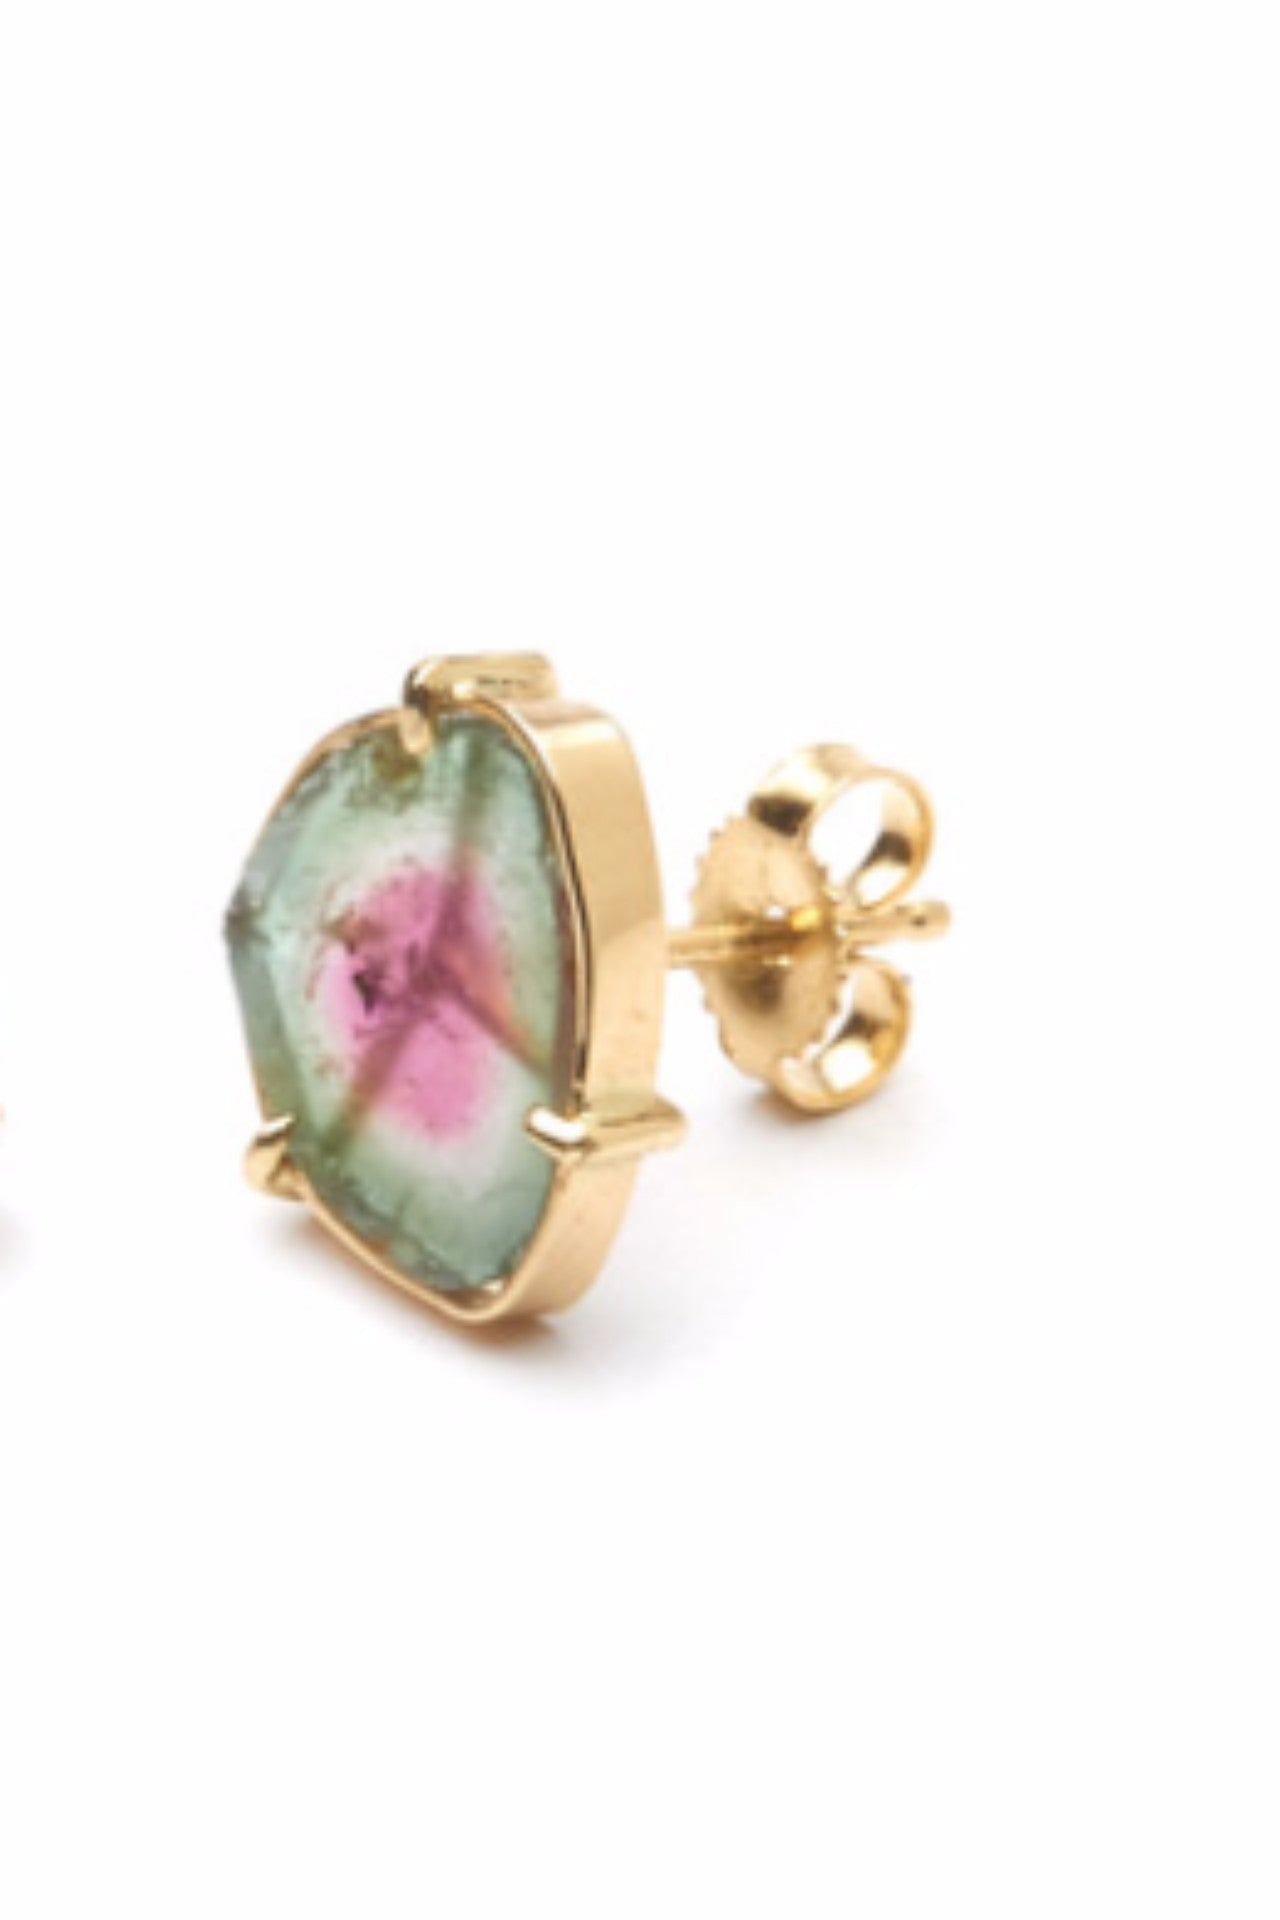 The CLC VECTOR Earrings in Gold with Watermelon Tourmaline